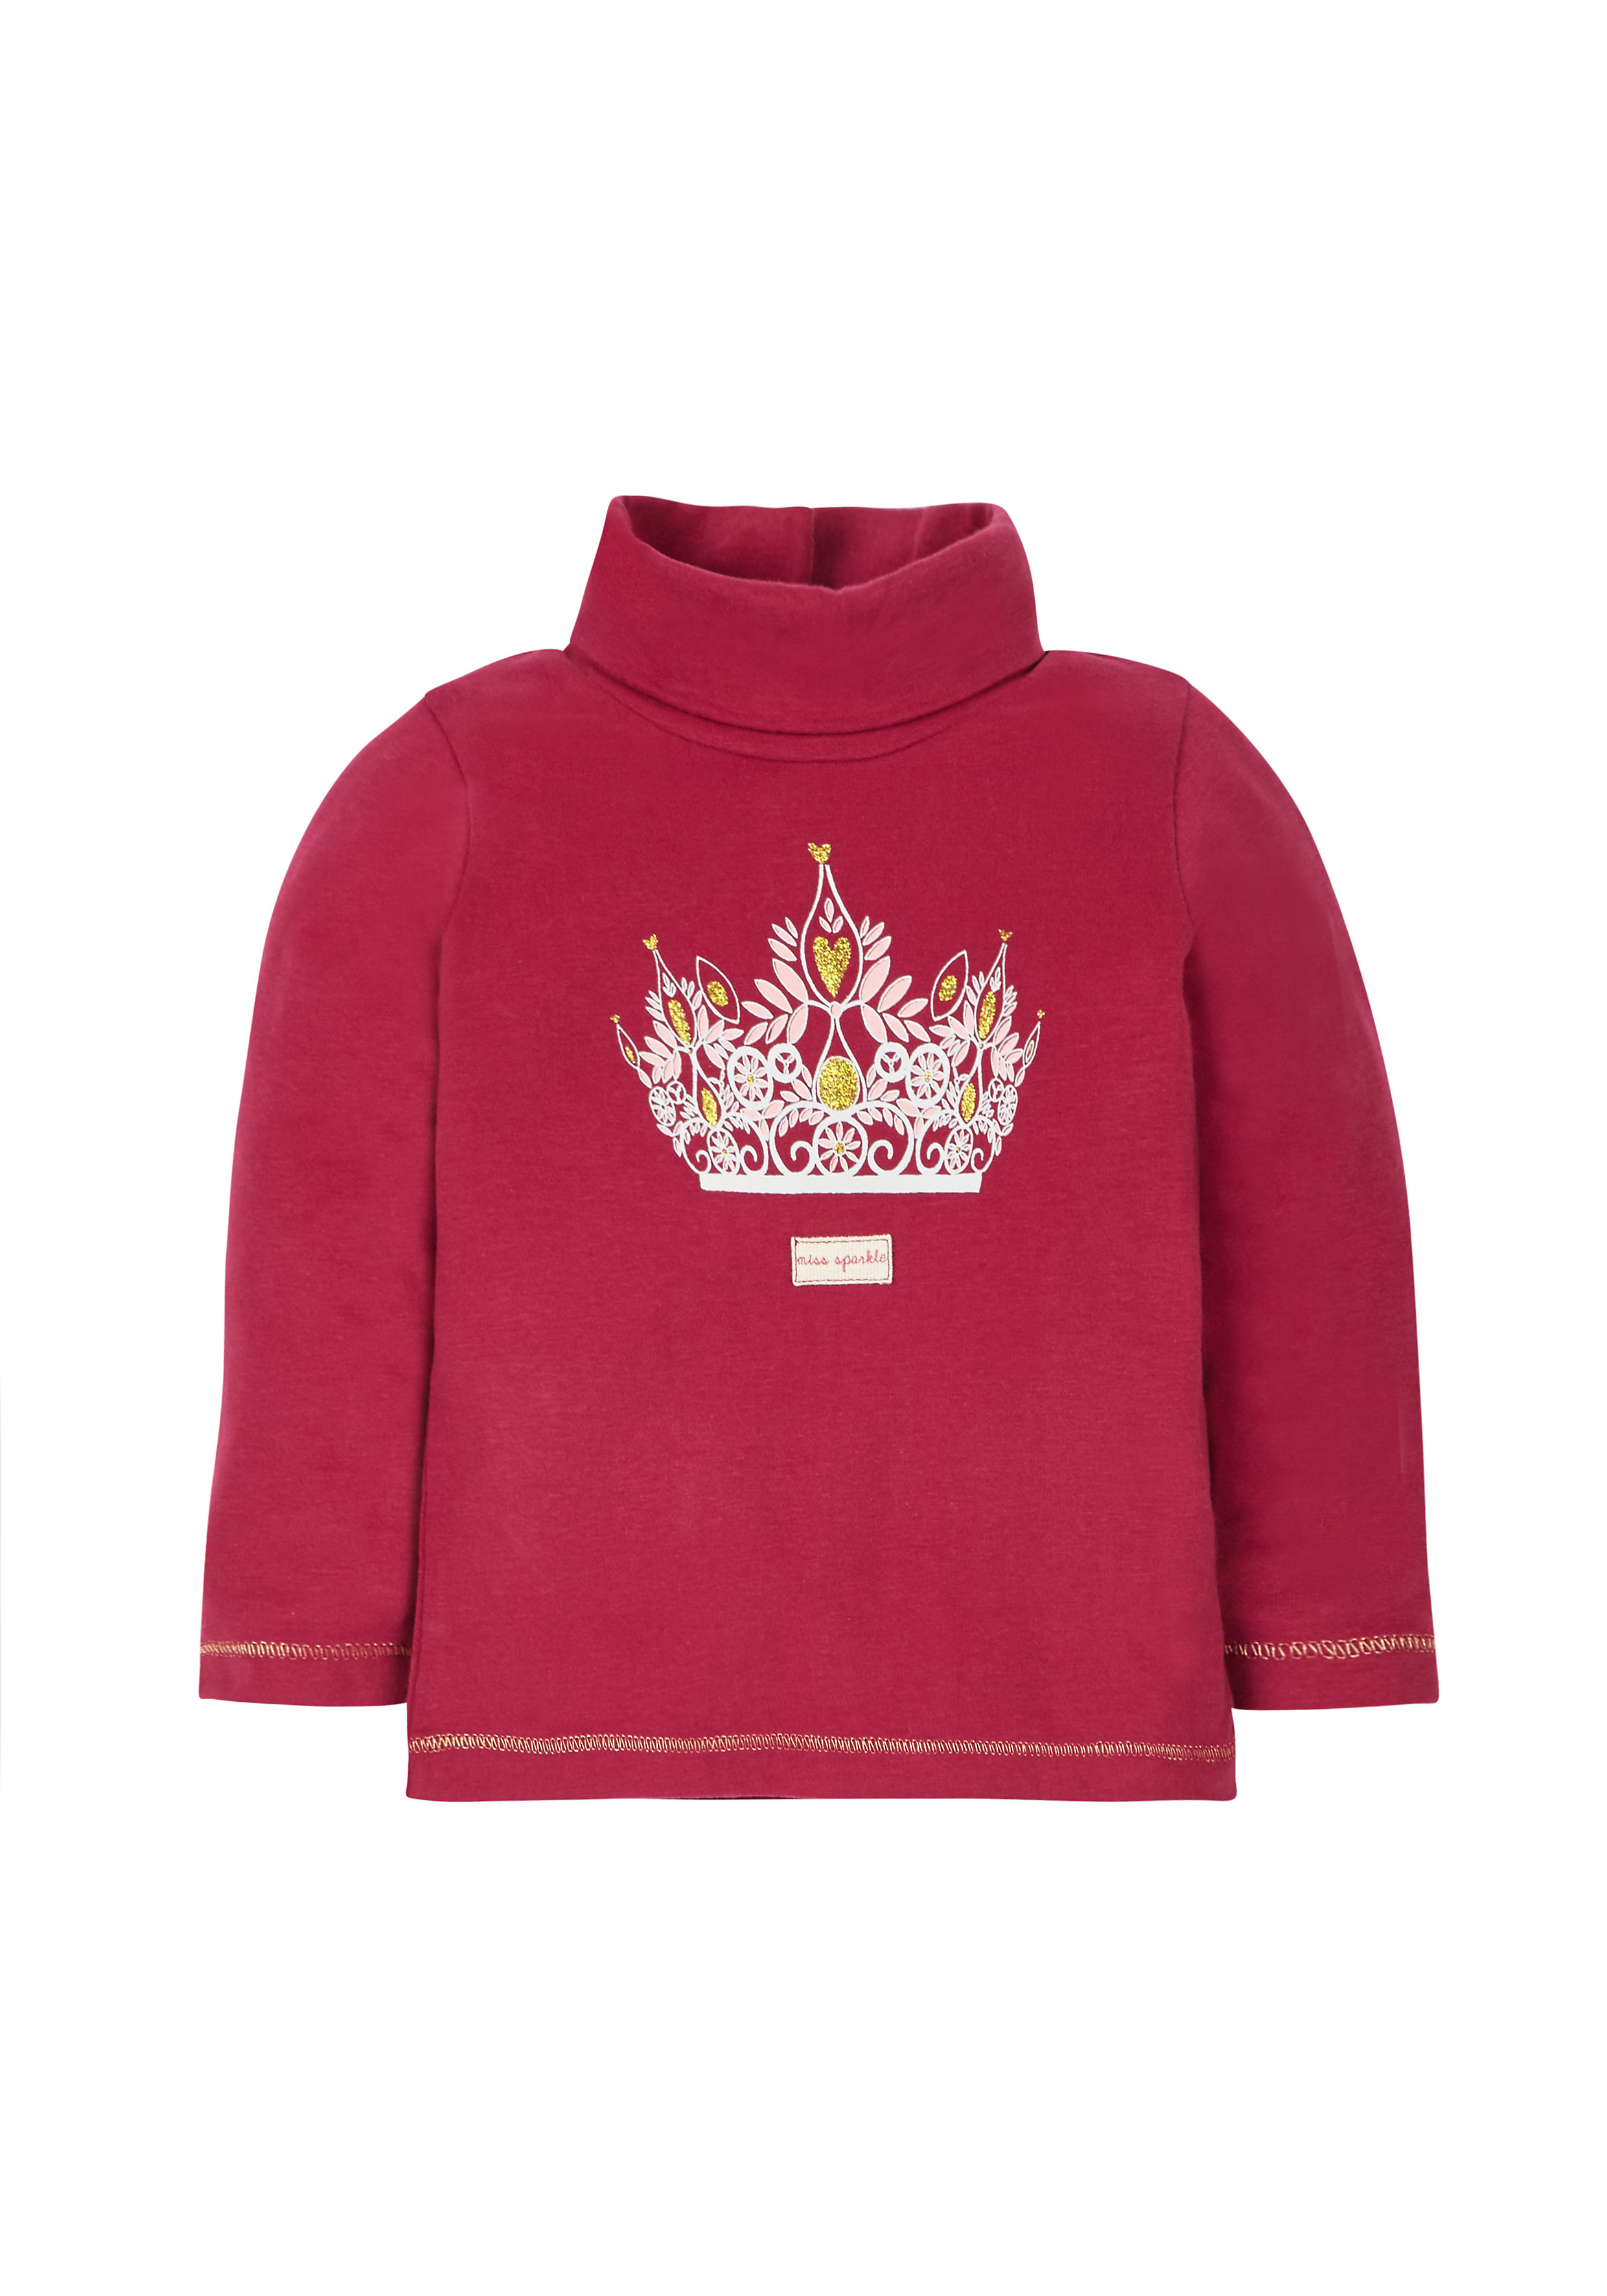 Mothercare   Girls Crown Roll Neck  - Red